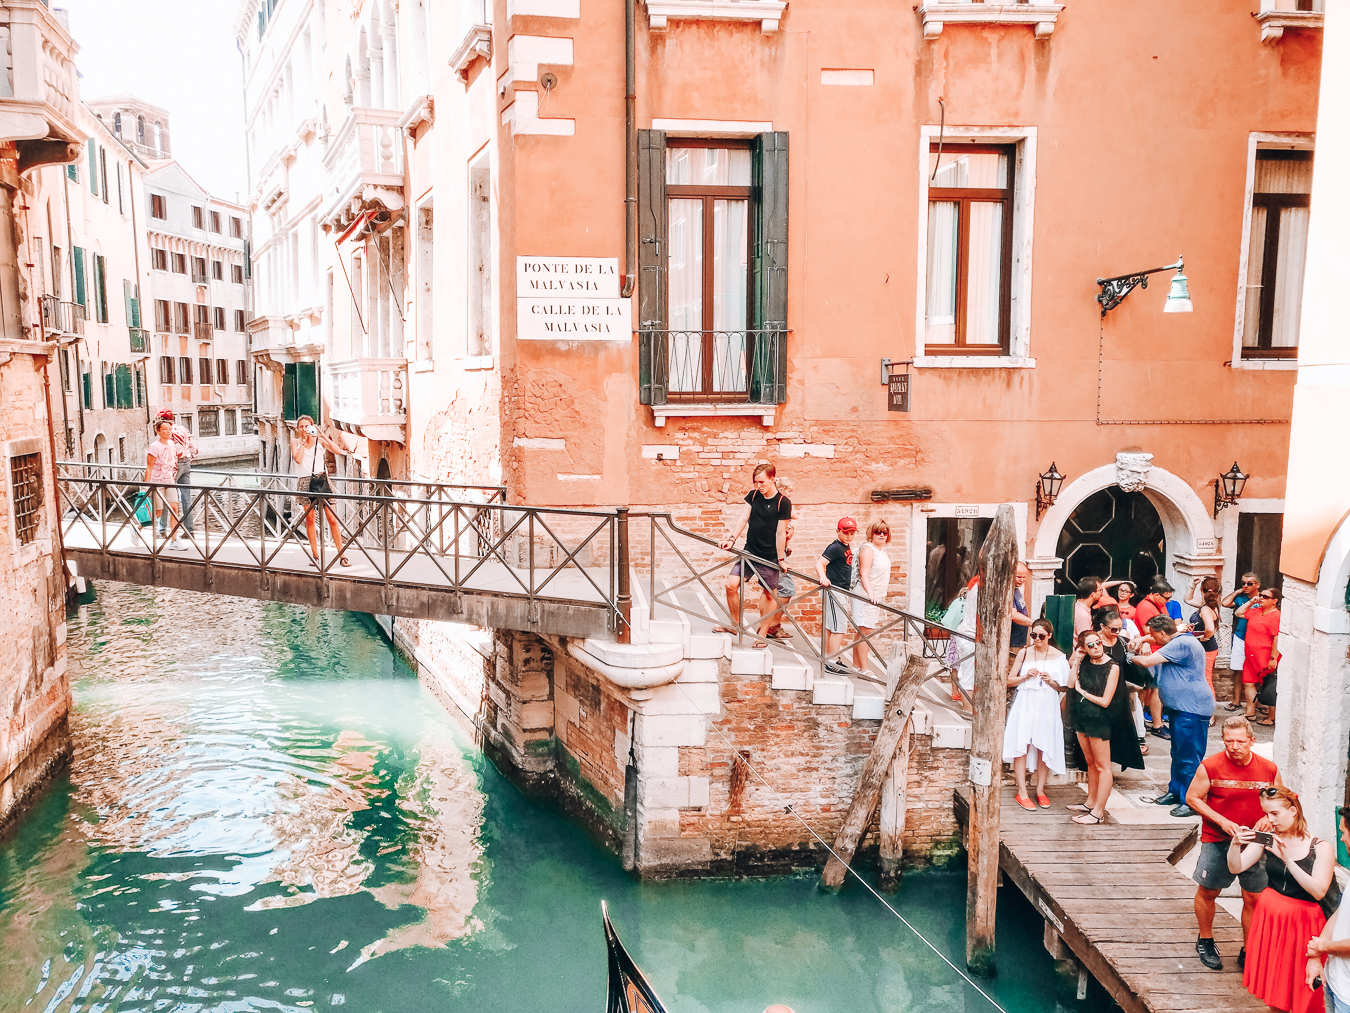 A busy place in Venice